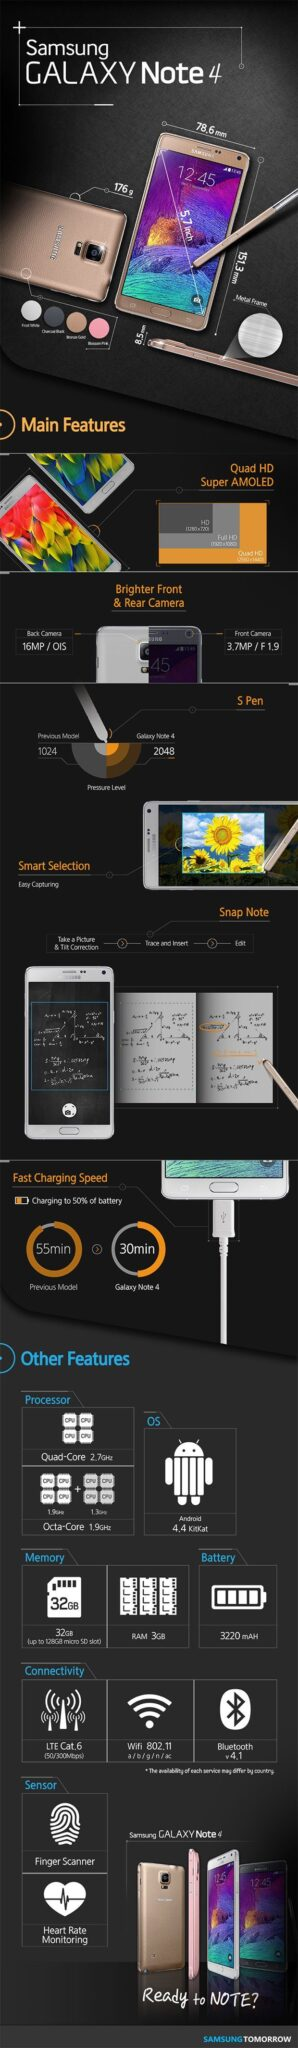 galaxy-note-4-infographie specs prix